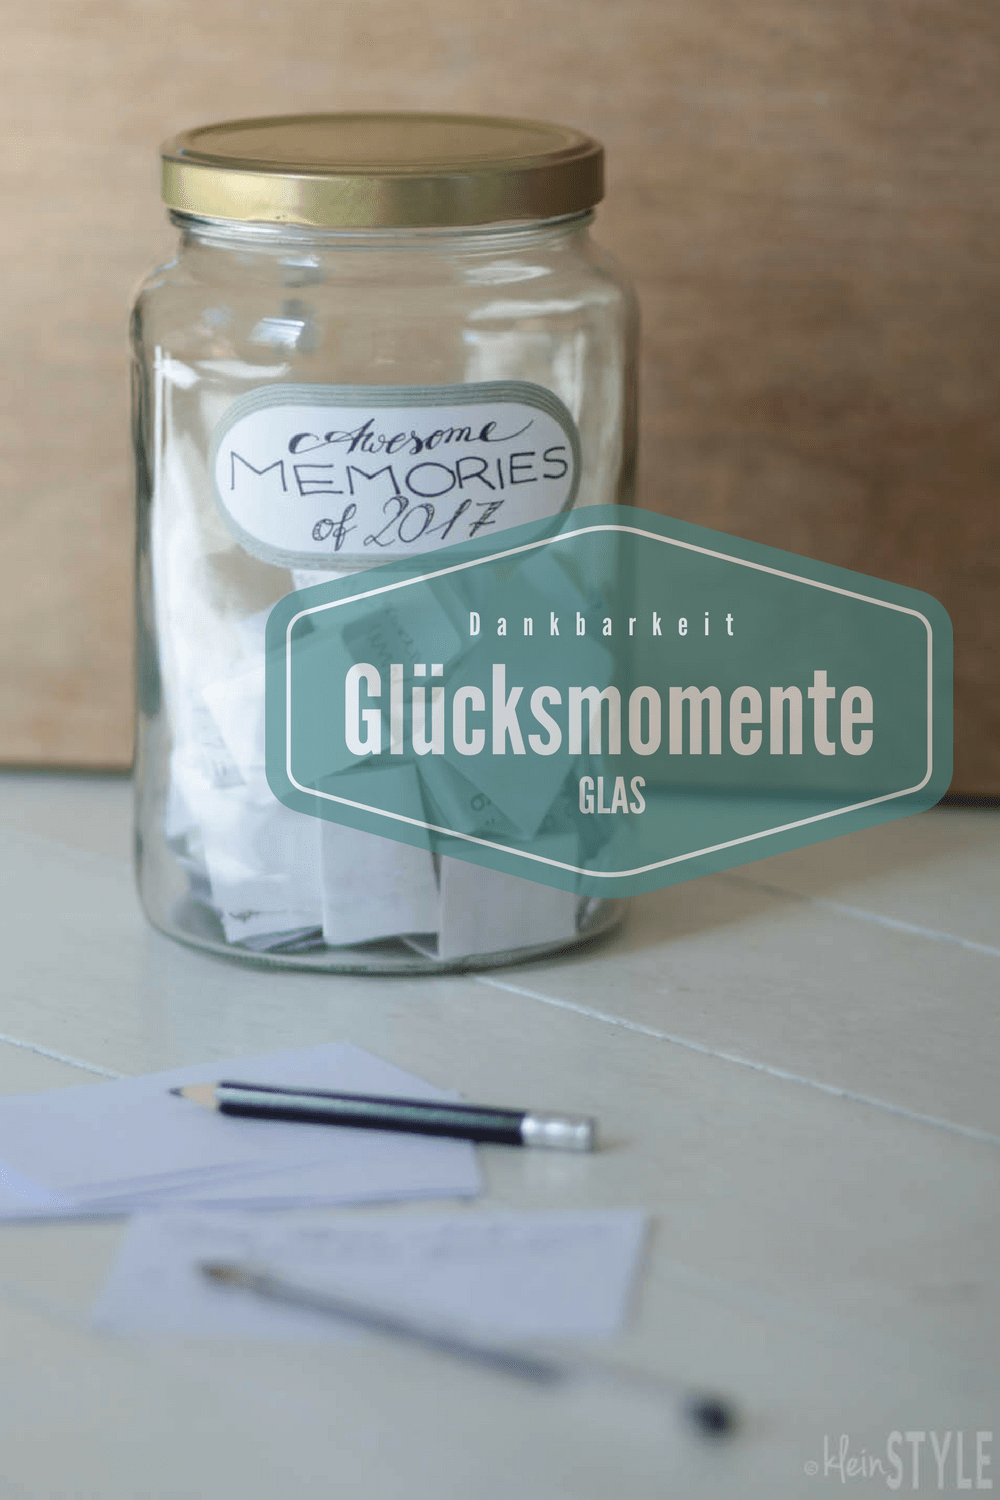 Awesome Memories of 2017 : unser Familien-Glücksmomente-Glas